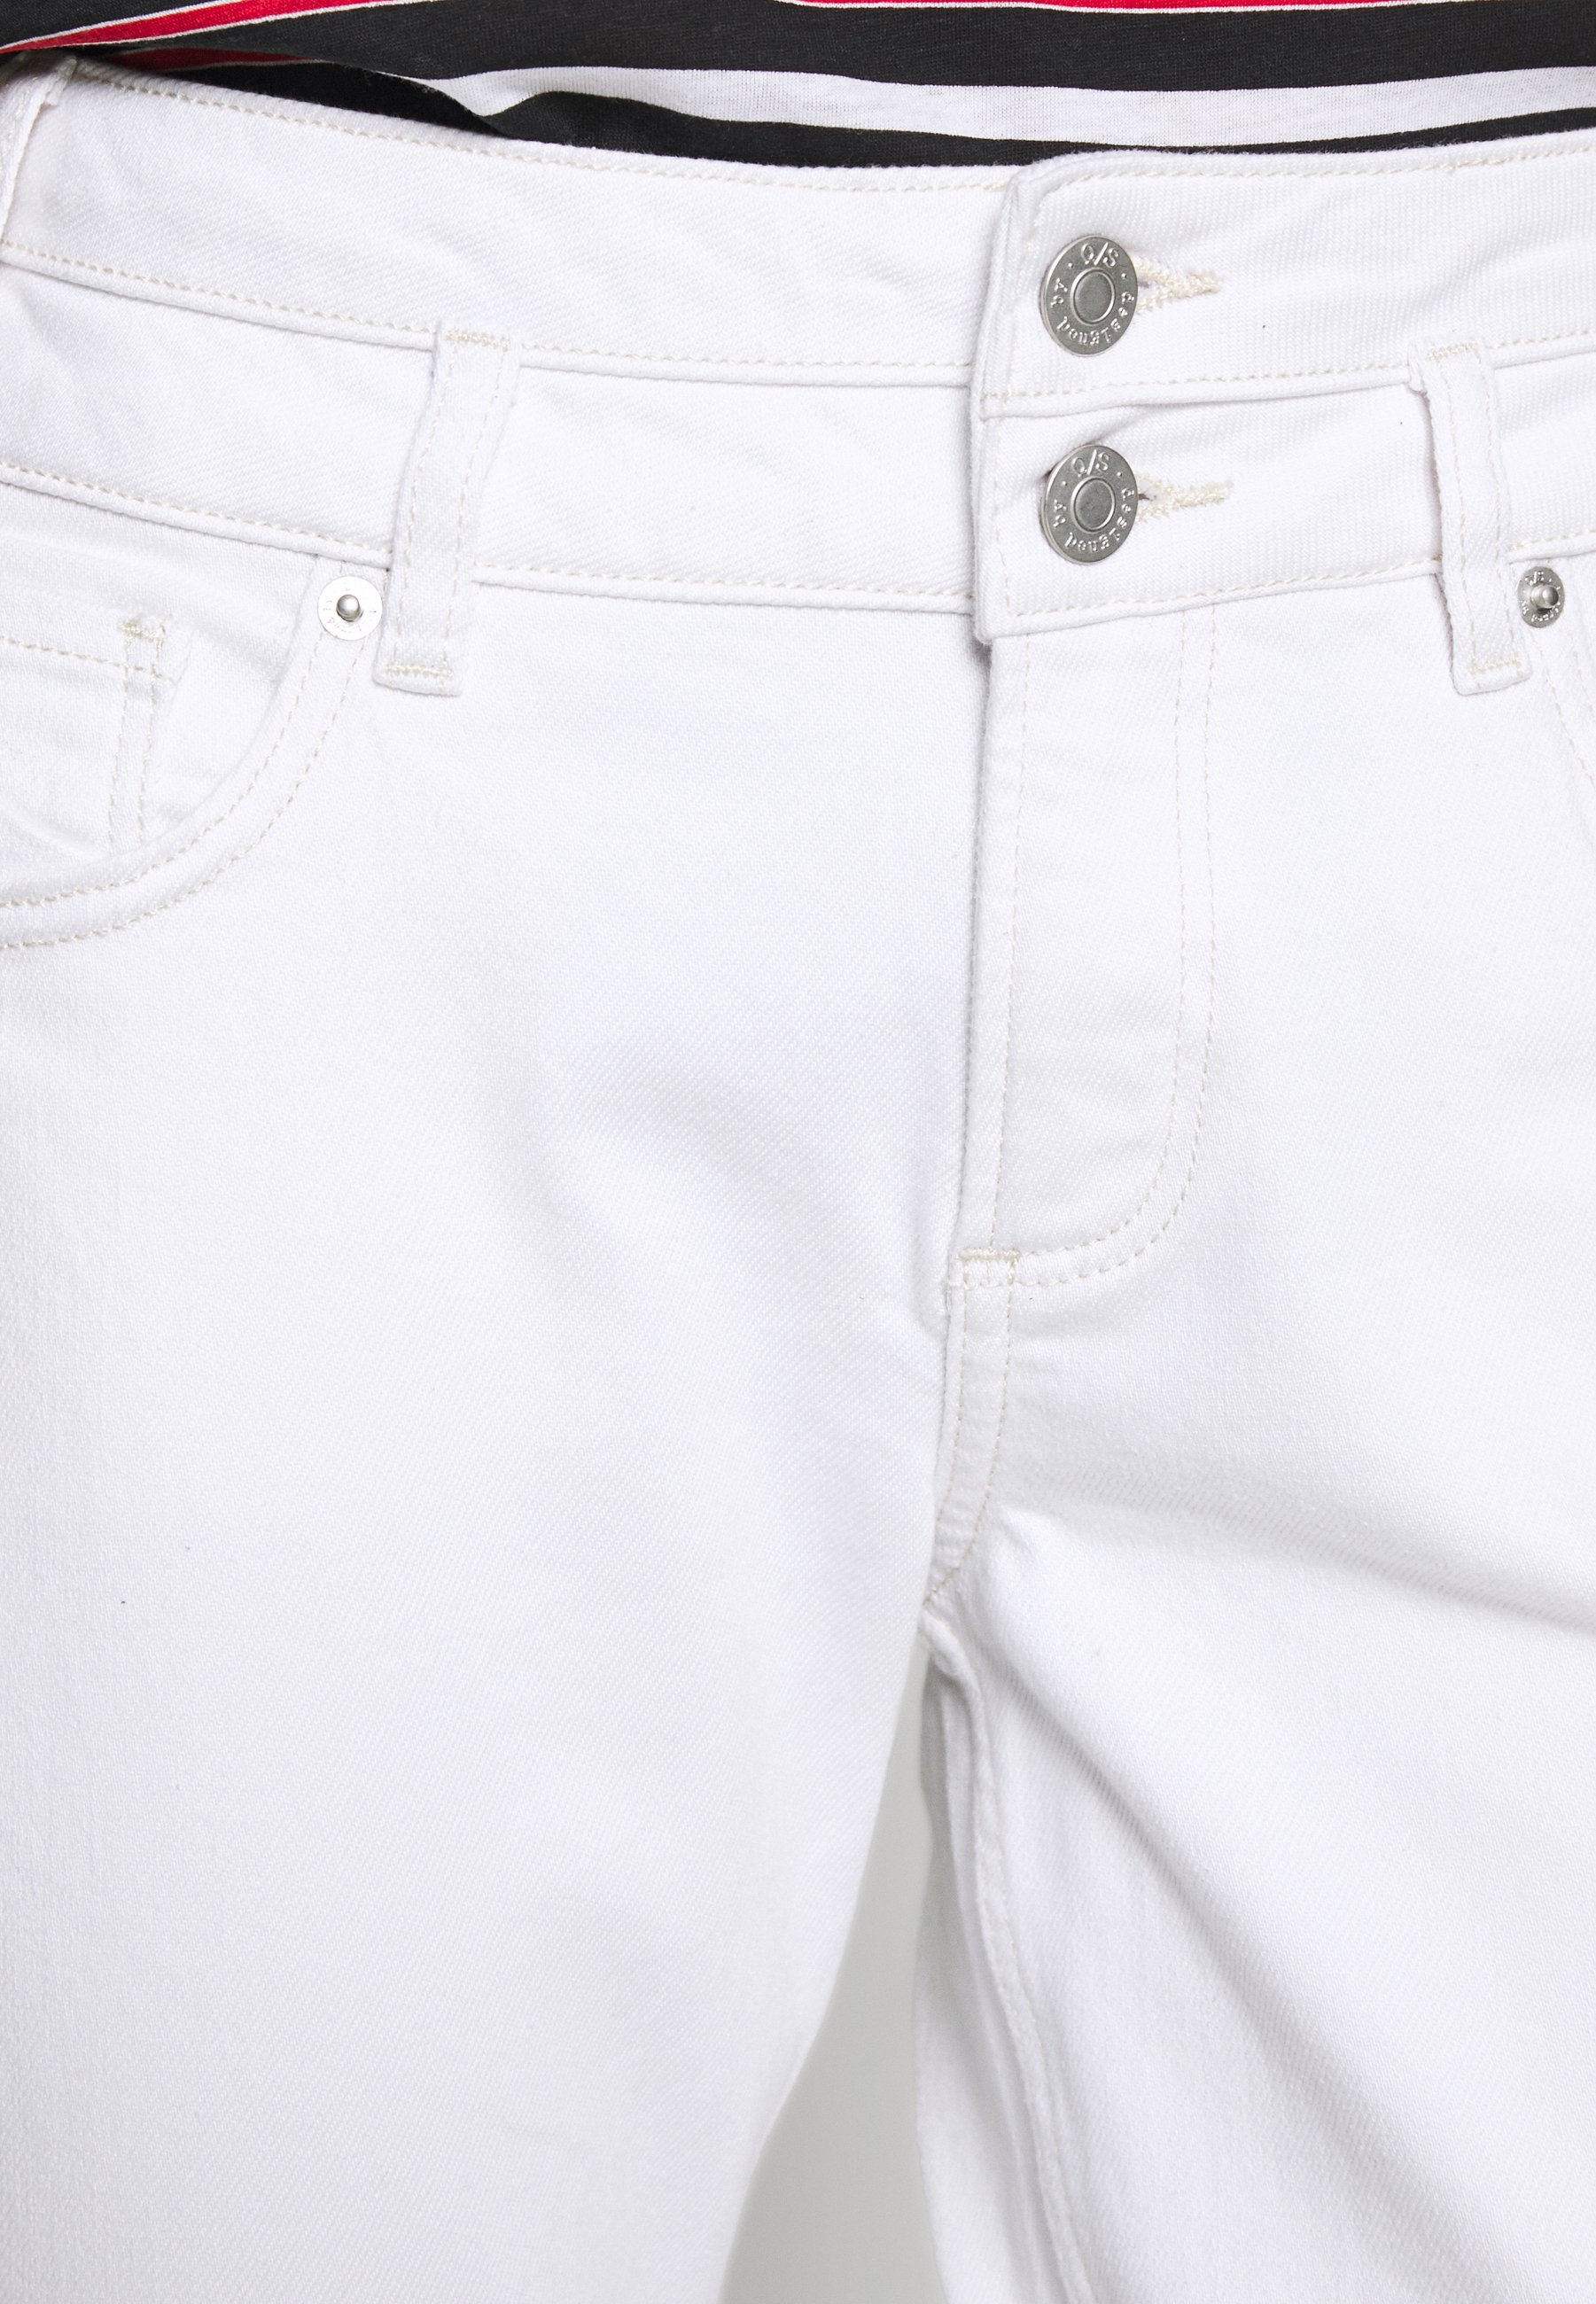 Q/S designed by Jeansy Slim Fit - white